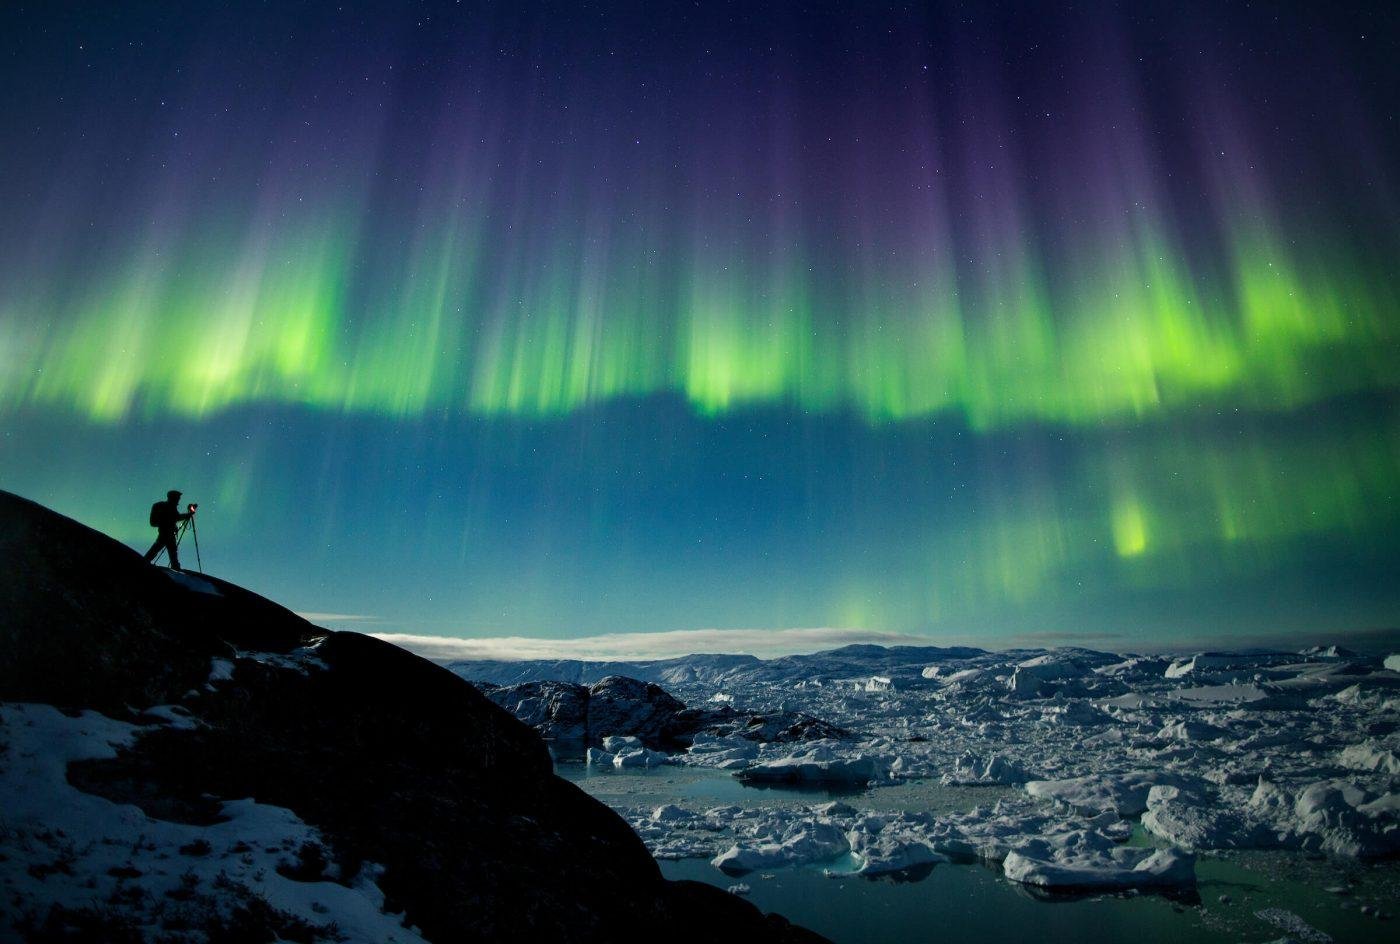 A photographer on a photo tour in North Greenland captures the perfect nighttime shot of northern lights, the starry night sky, and icebergs in the Ilulissat Icefjord. Photo by Paul Zizka.